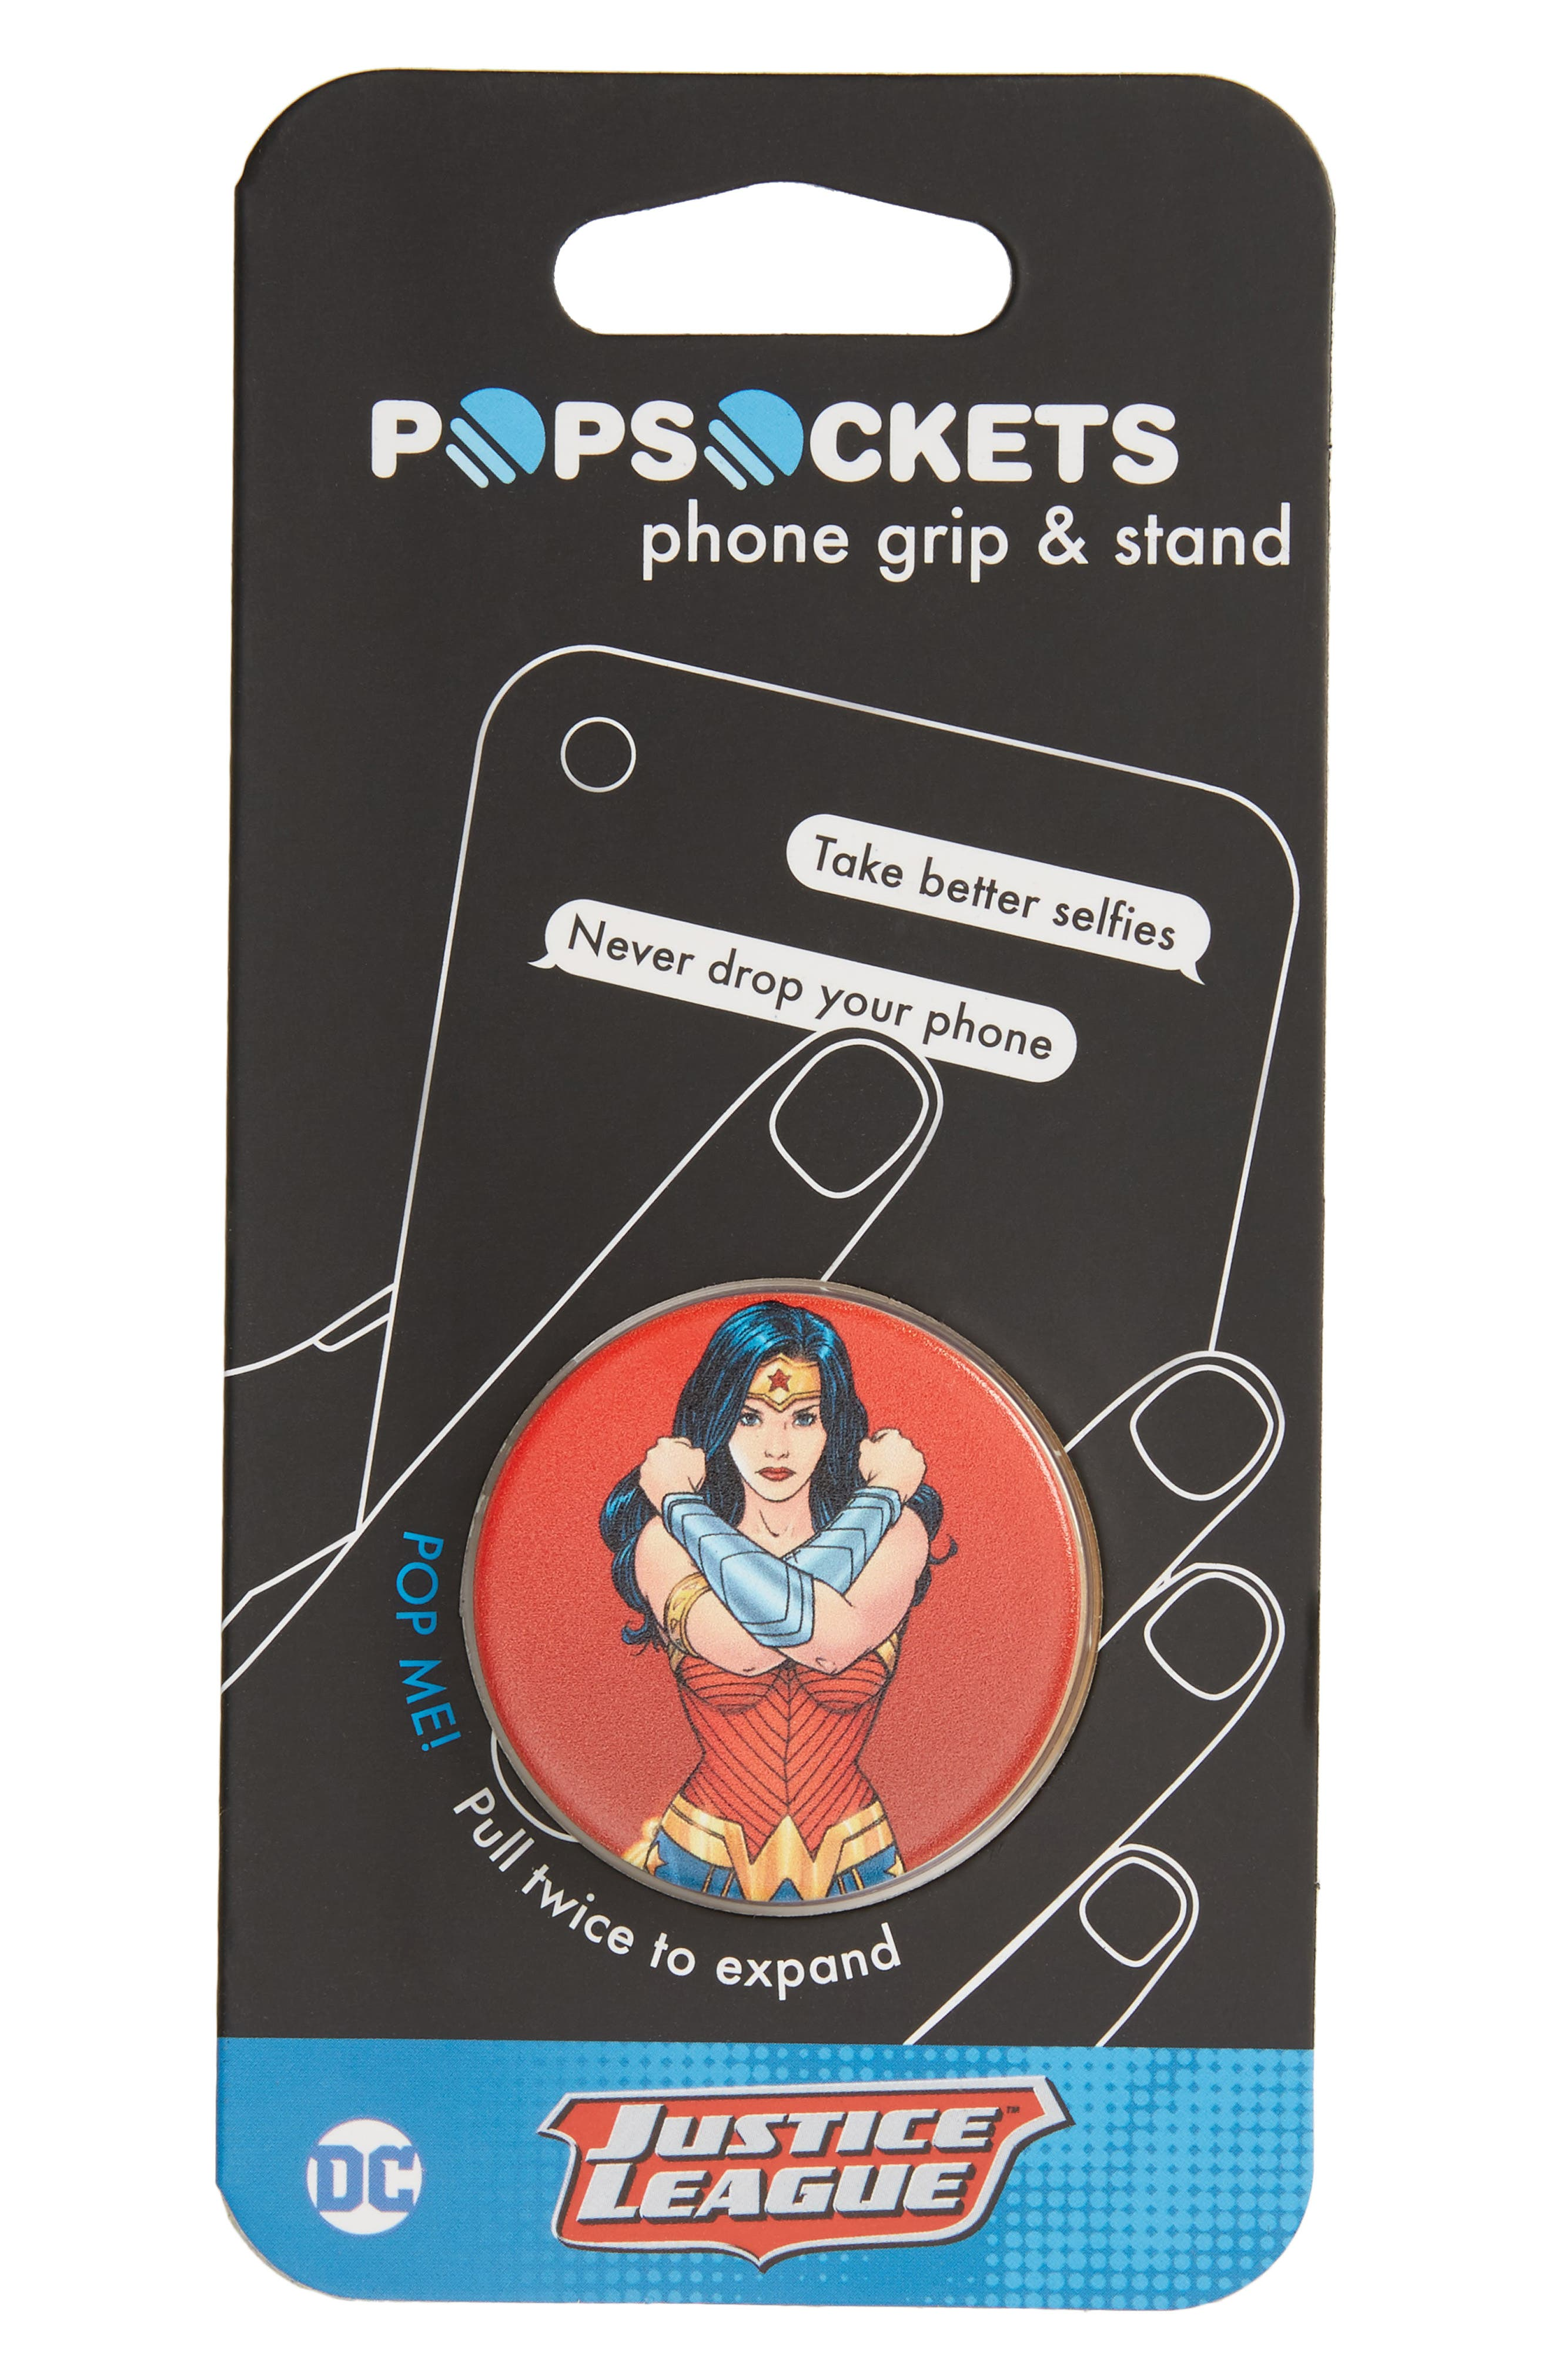 DC Wonder Woman Cell Phone Grip & Stand,                         Main,                         color, 600